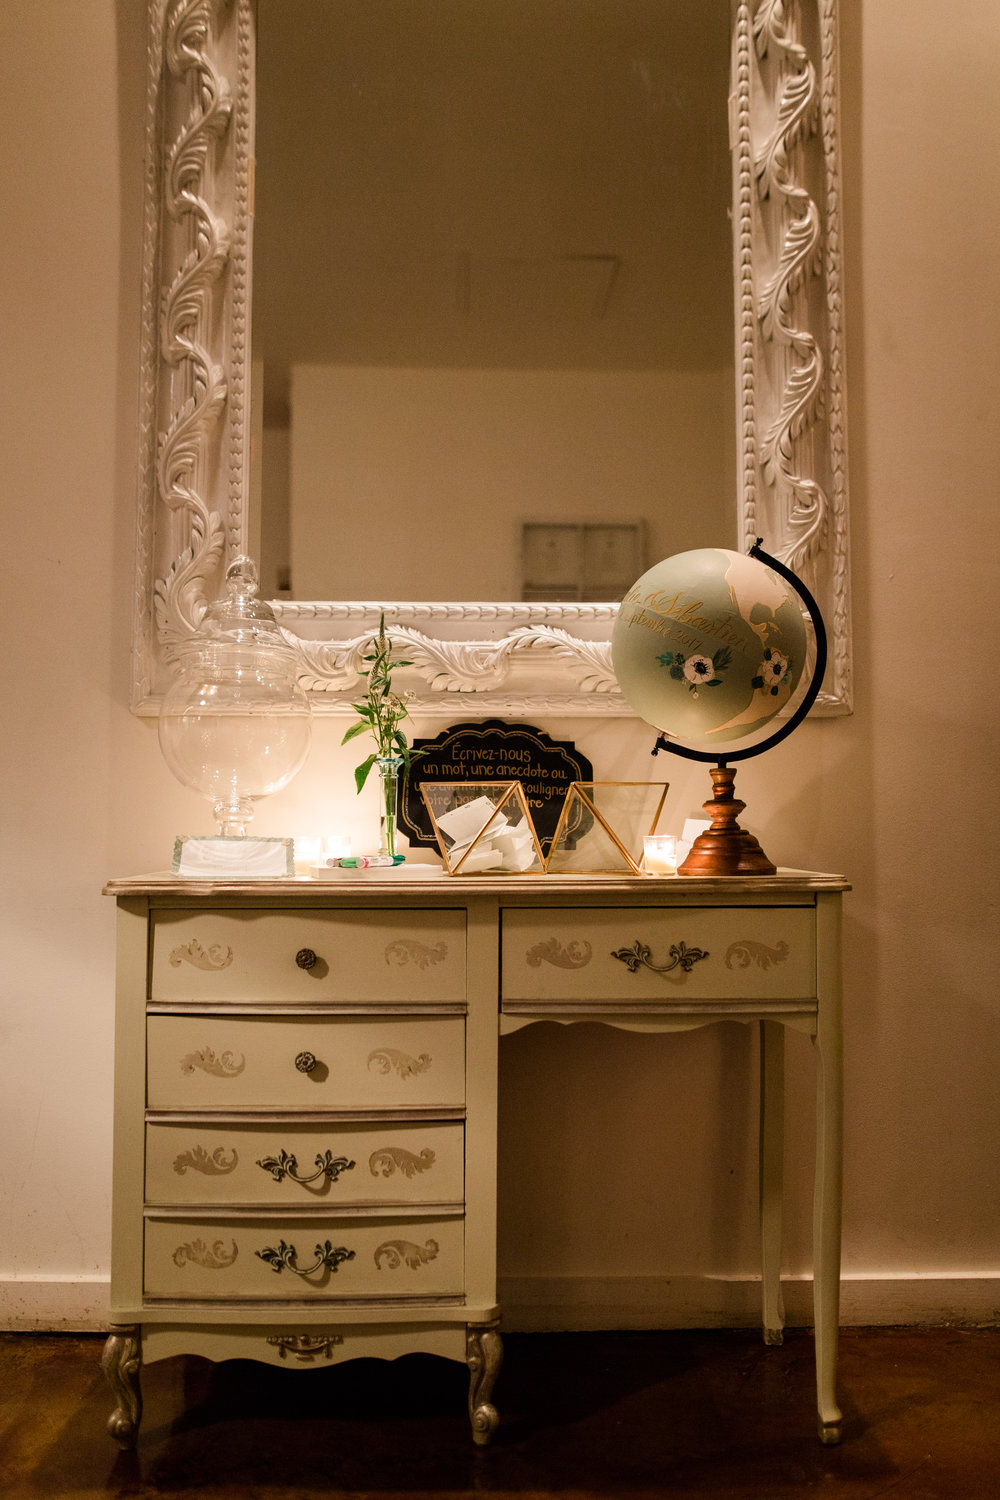 1143    Vielle coiffeuse / Old Vanity    1